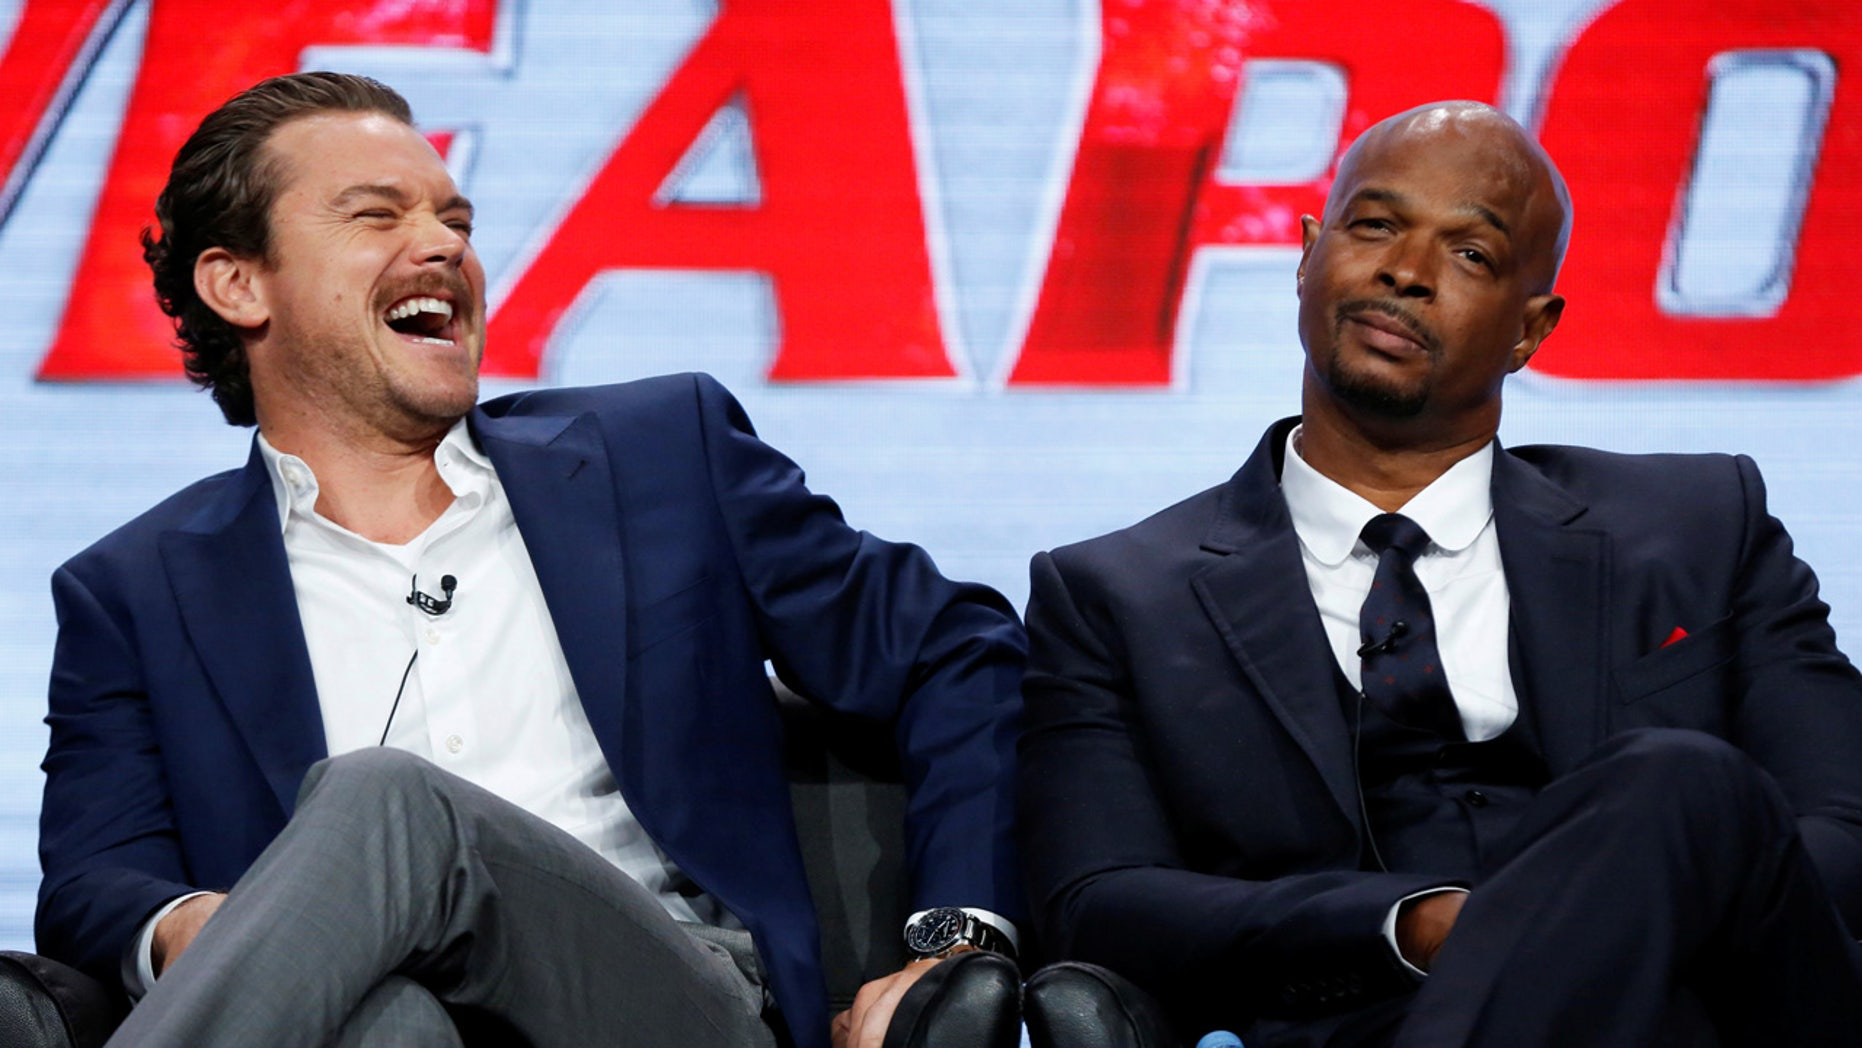 Former cast members Damon Wayans and Clayne Crawford will no longer work together in the newly announced third season of the Fox series after an on-set injury that cause a rift between the two.